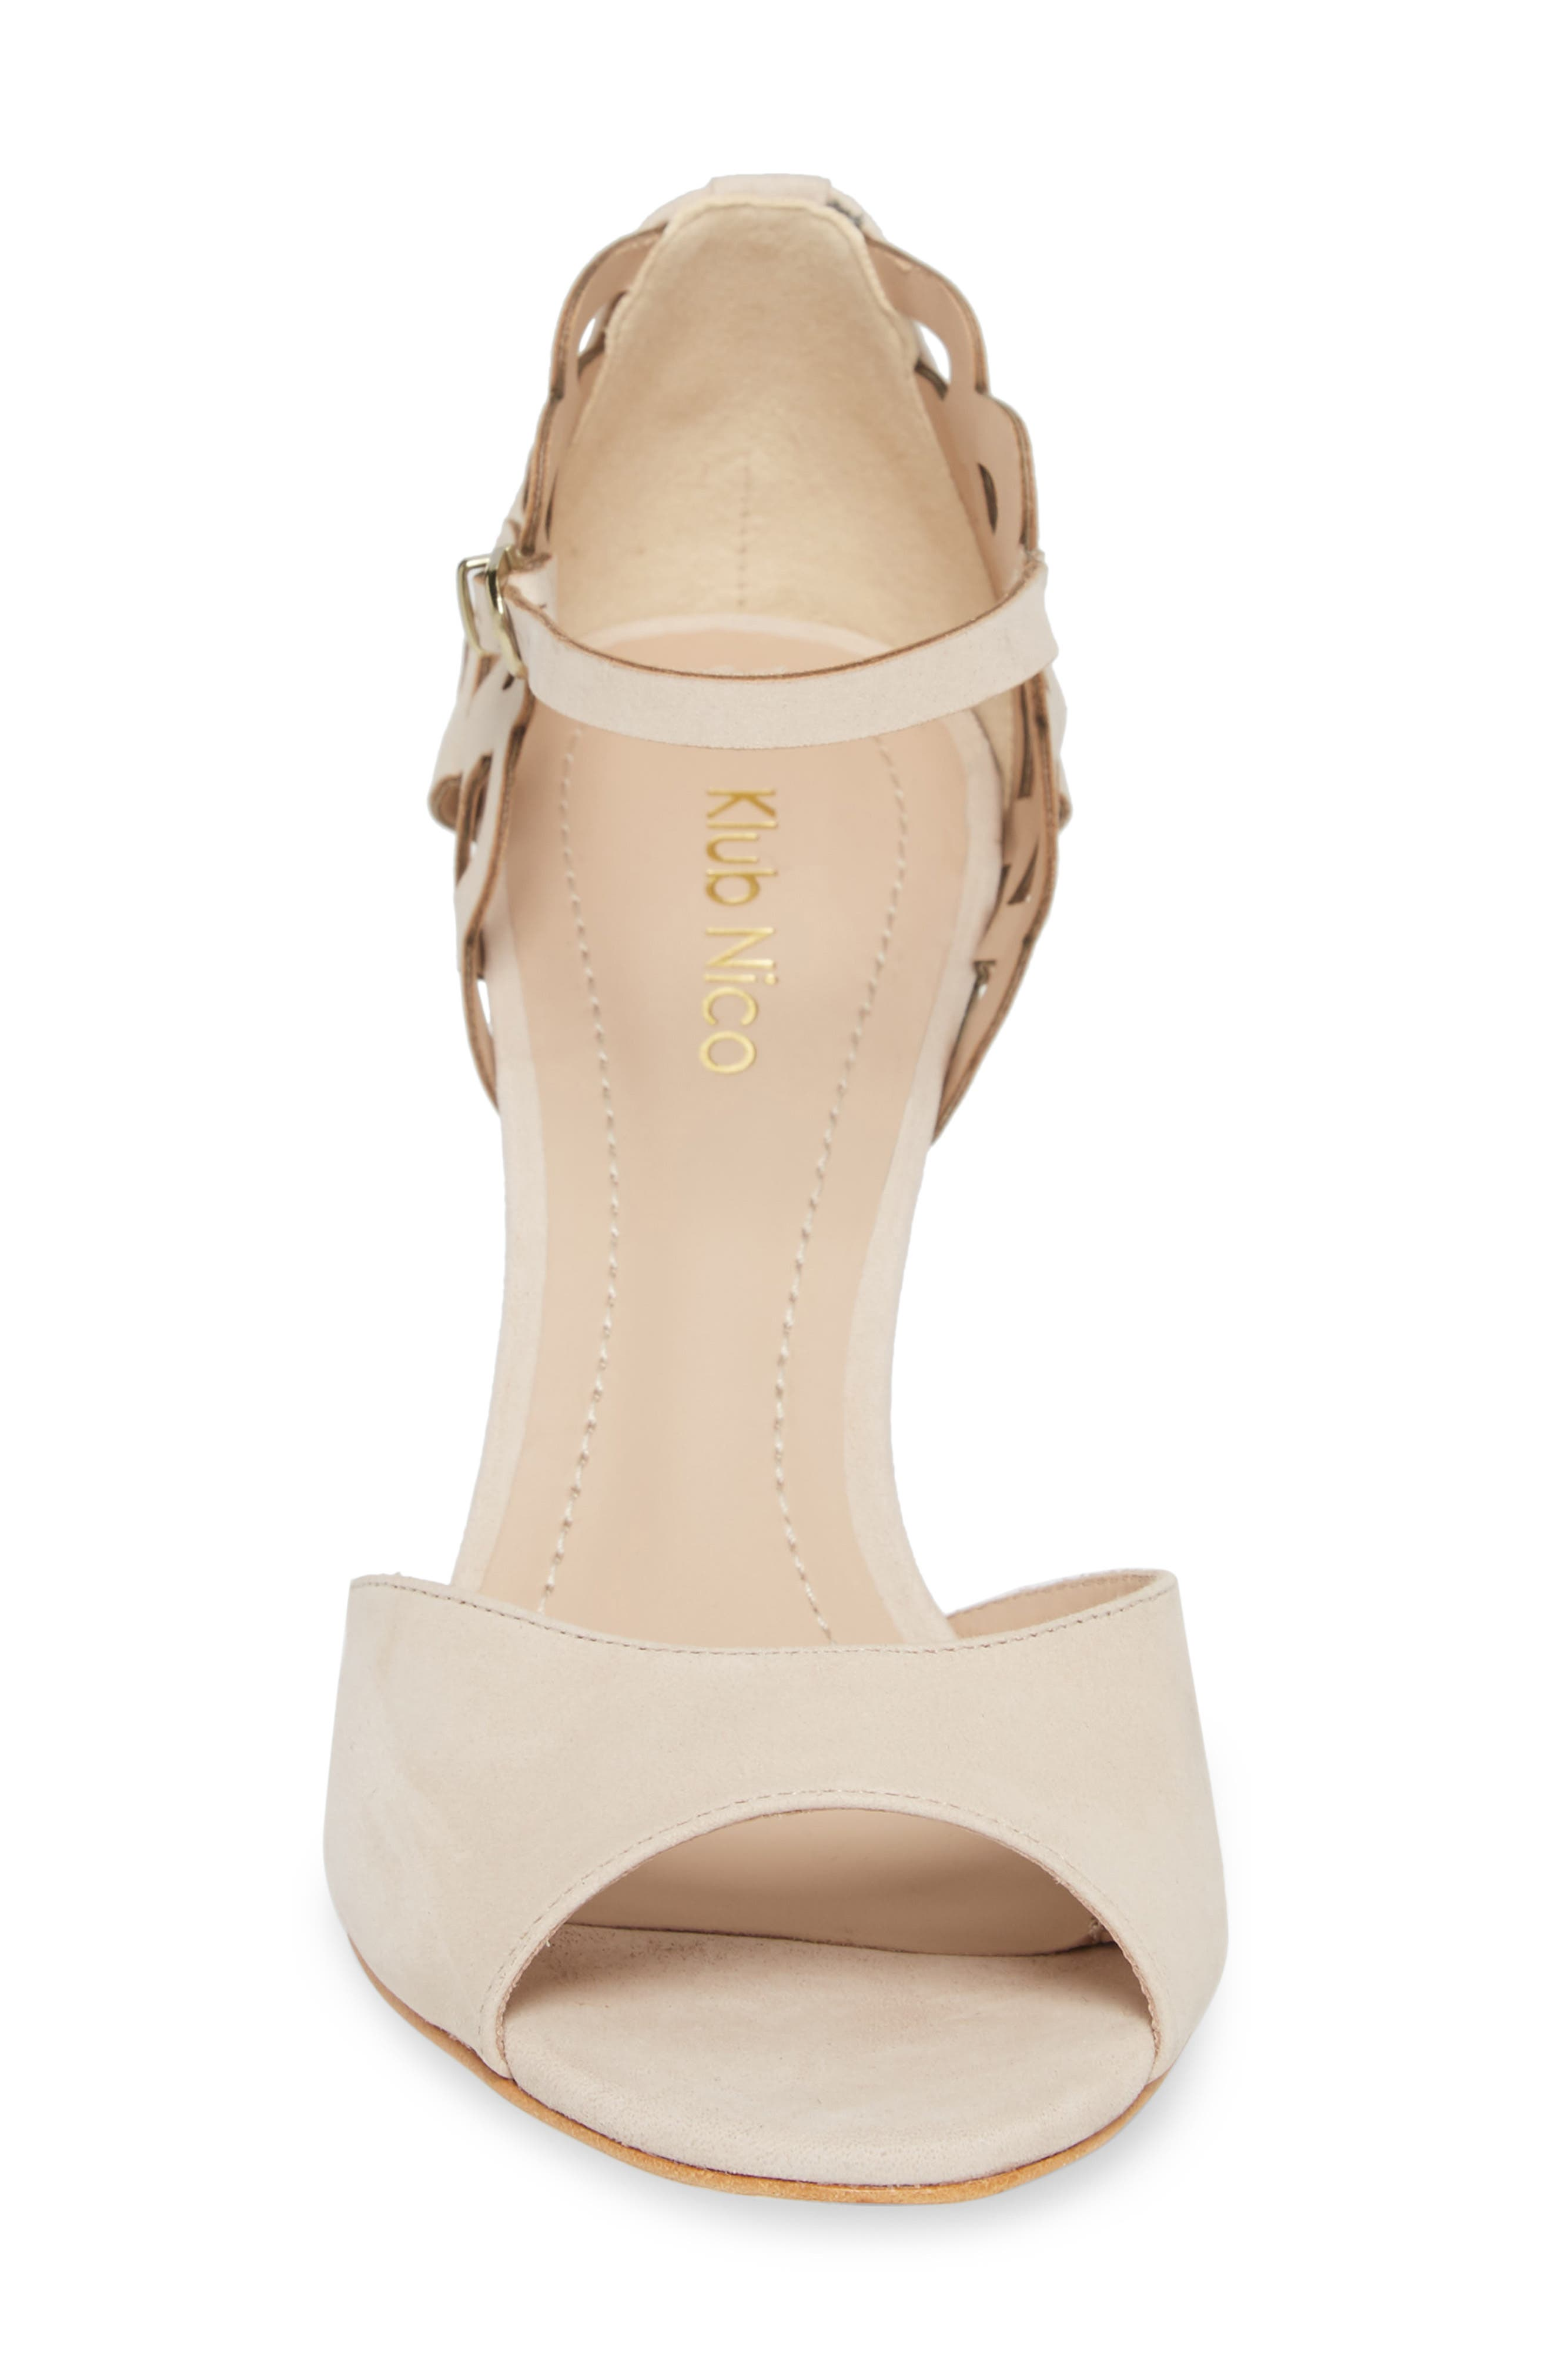 Adalie Sandal,                             Alternate thumbnail 4, color,                             Nude Leather